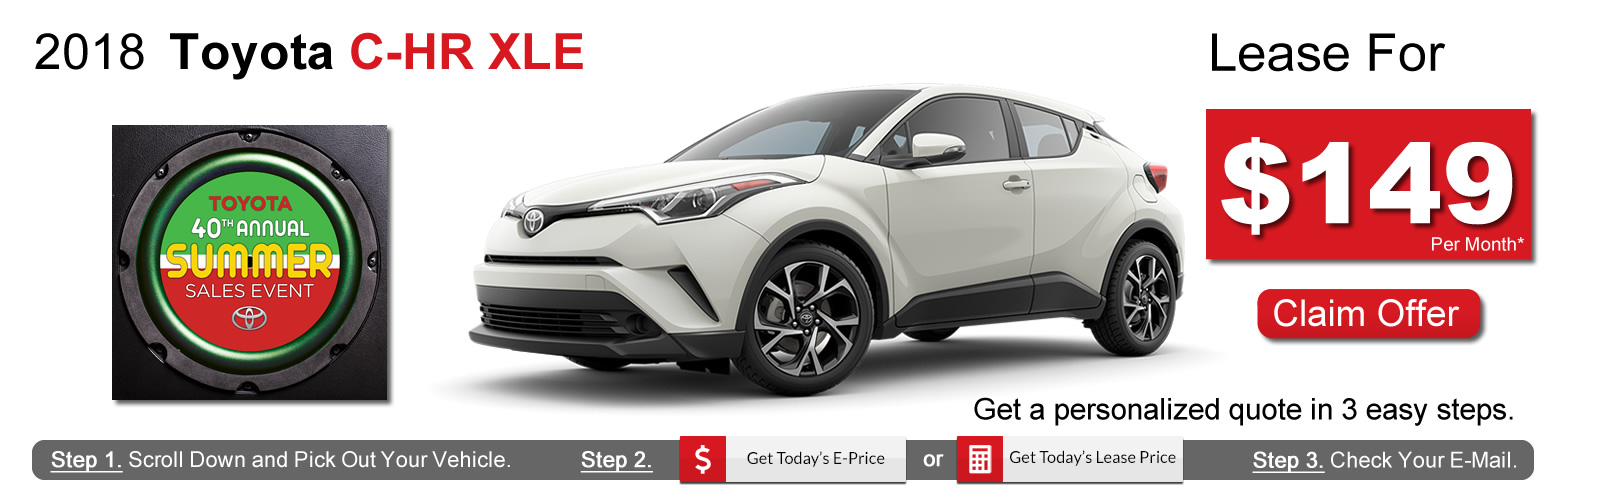 toyota wallpaperteam specials beautiful lease deals of